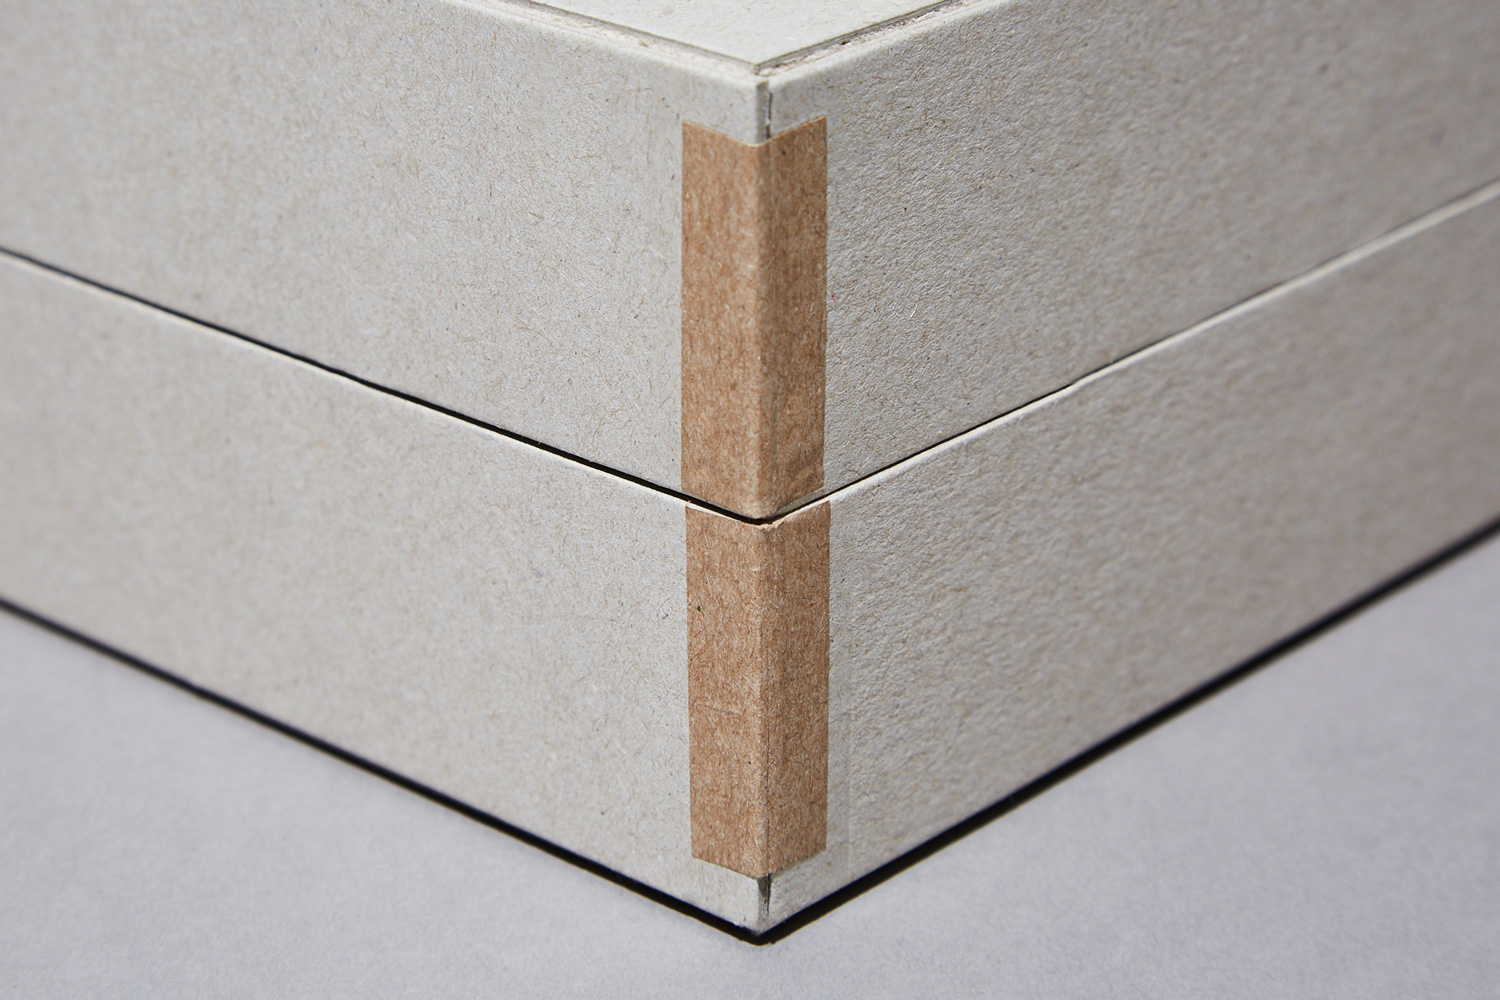 Progress Packaging Greyboard Paper Over Board Bespoke Luxury Custom Box Boxes Manufacture Scored Folded Custom